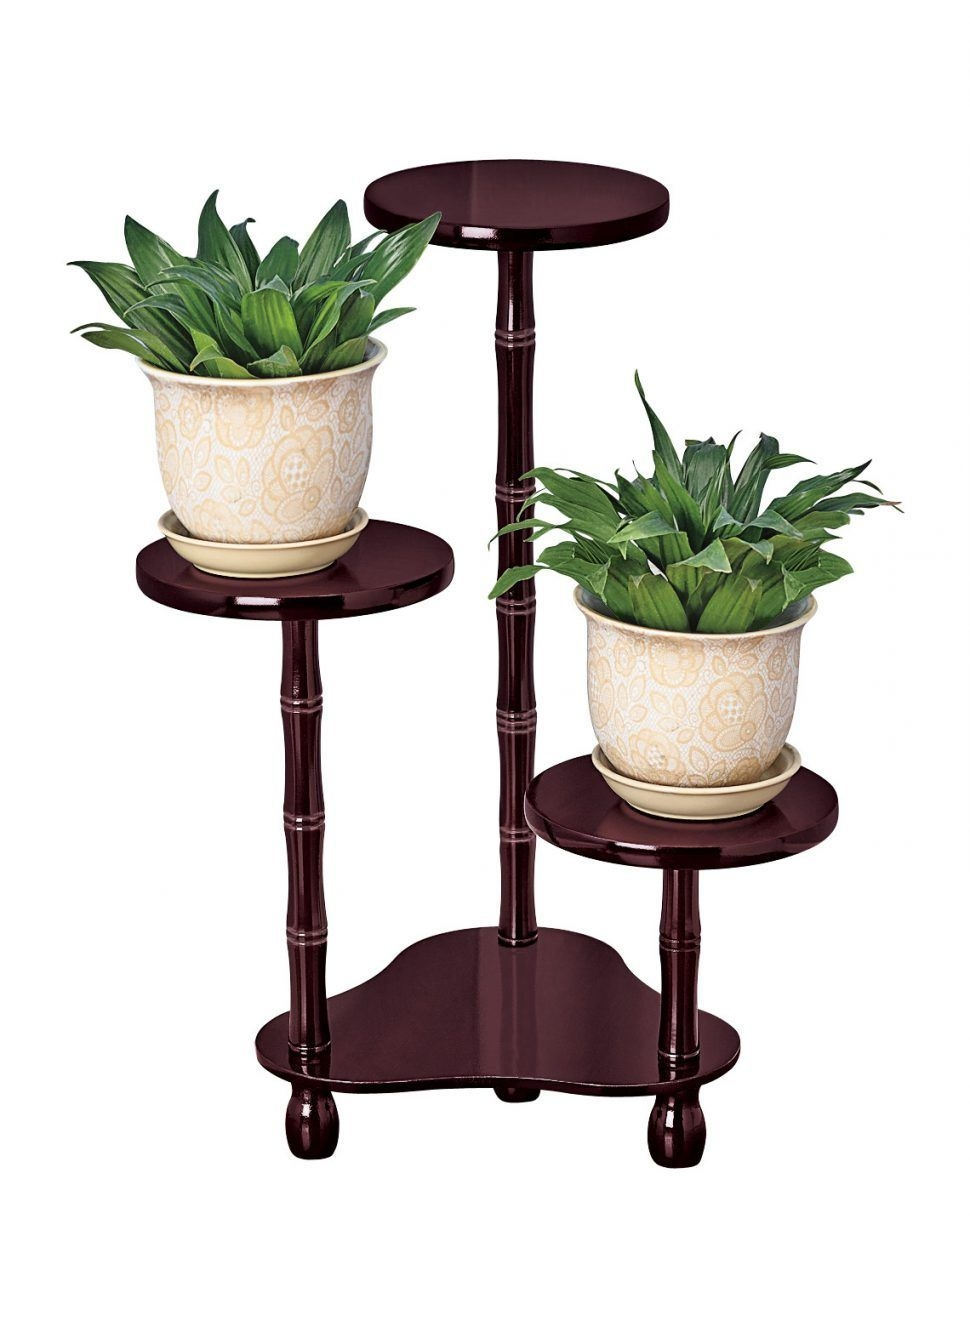 Awesome Stand Wooden Plant Ideas24